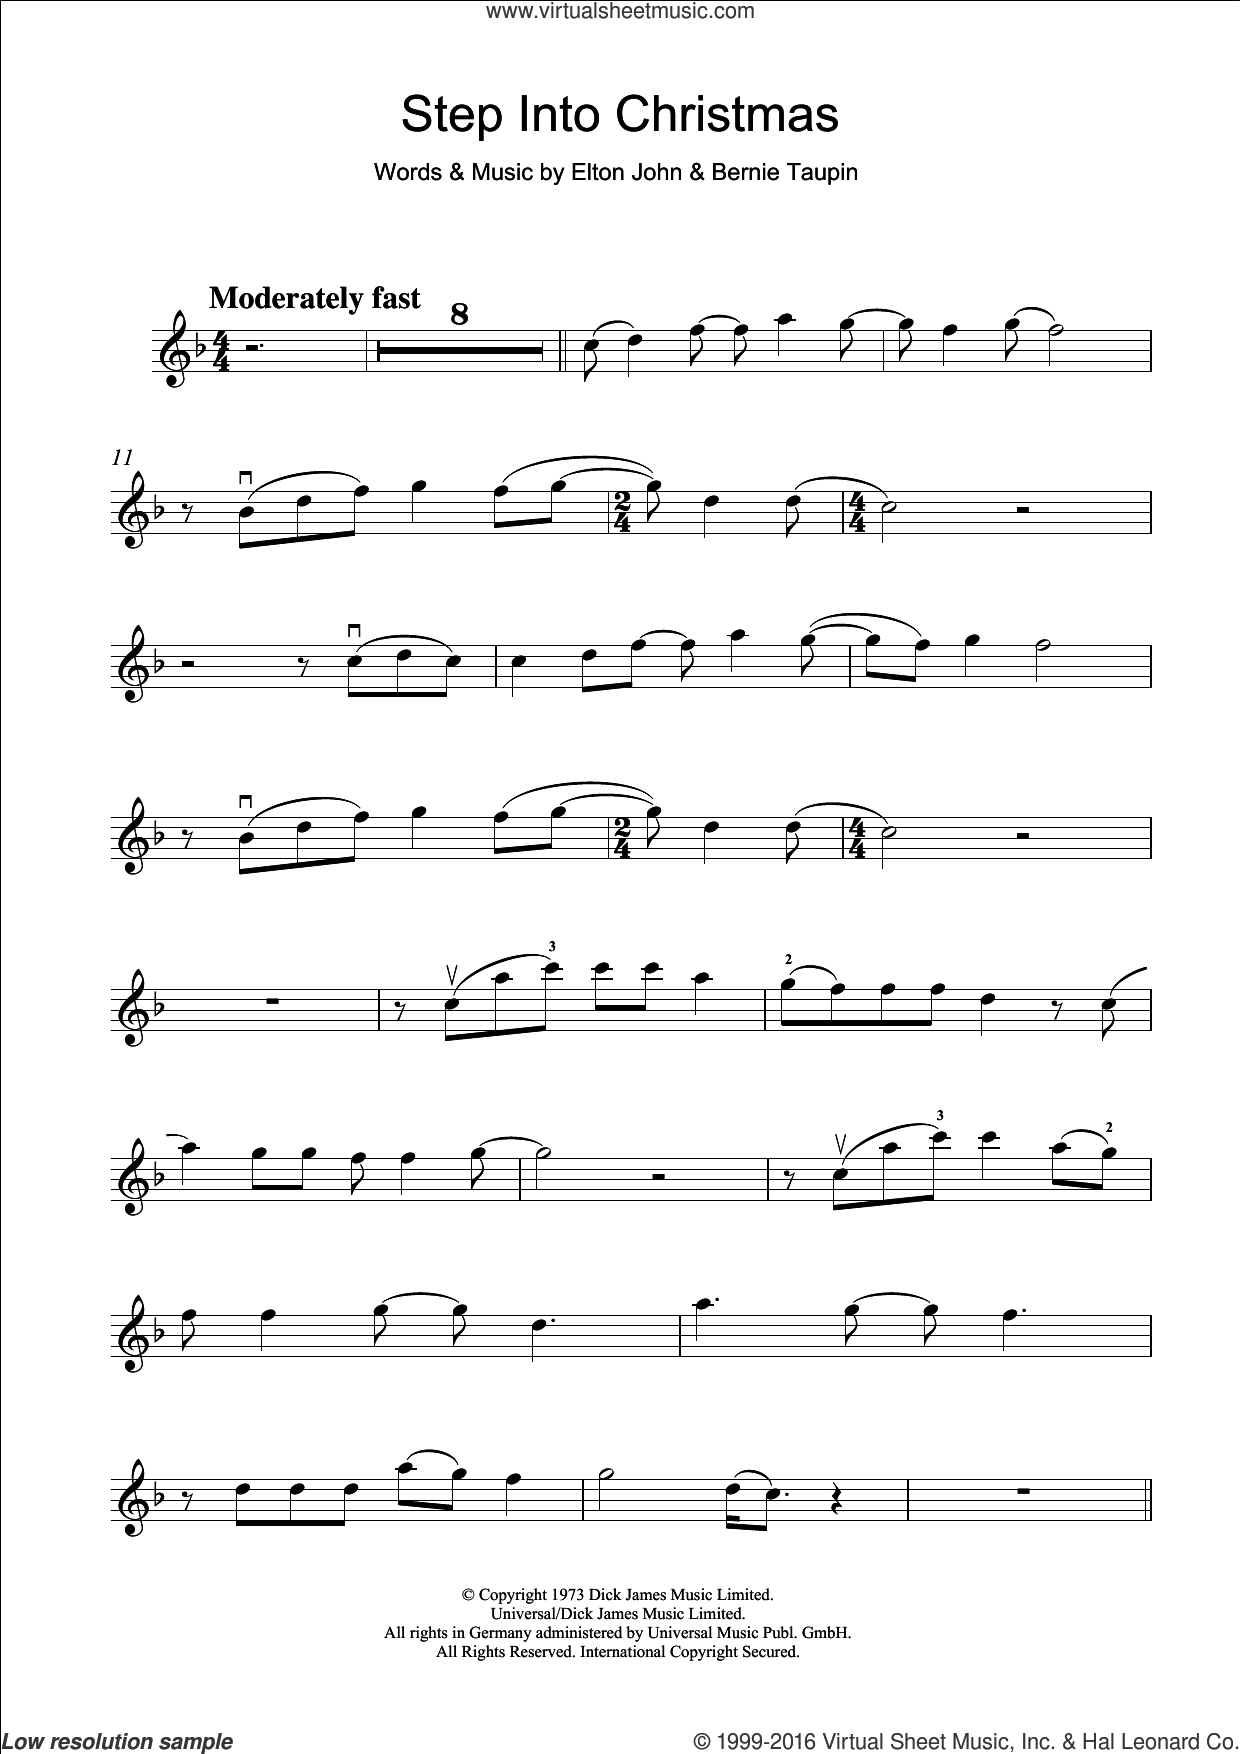 Step Into Christmas sheet music for violin solo by Bernie Taupin